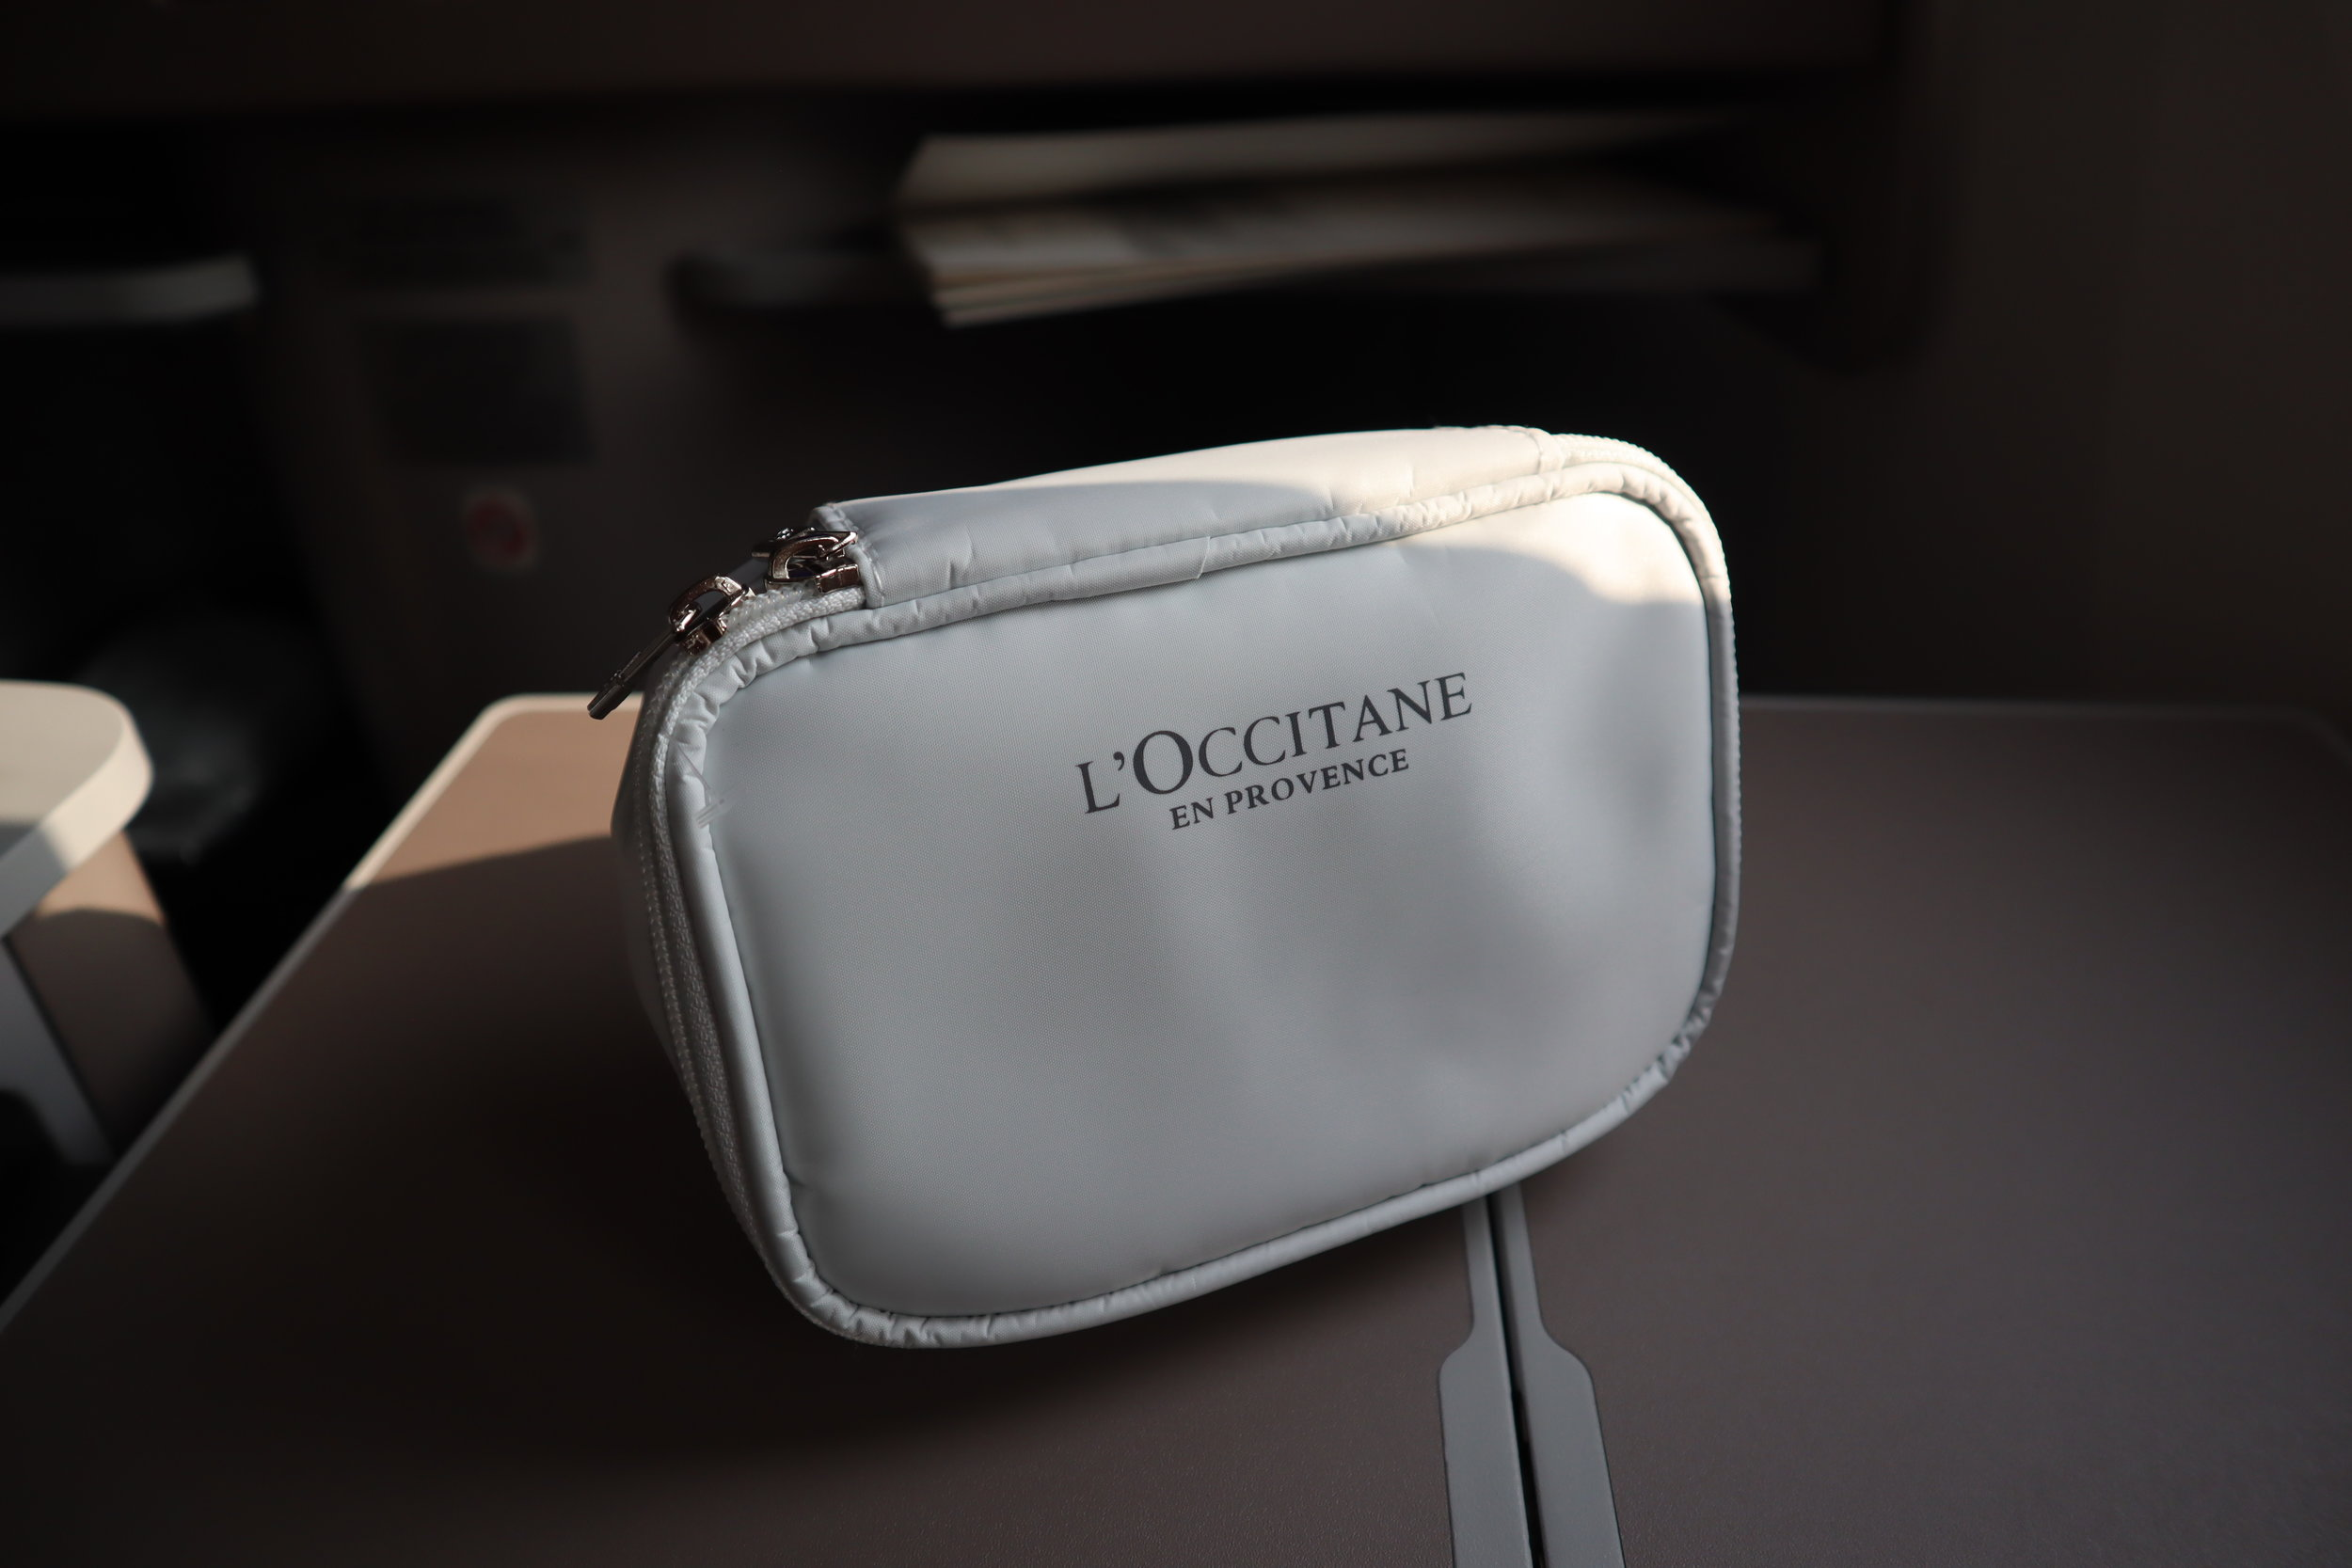 Air China business class – L'Occitane amenity kit